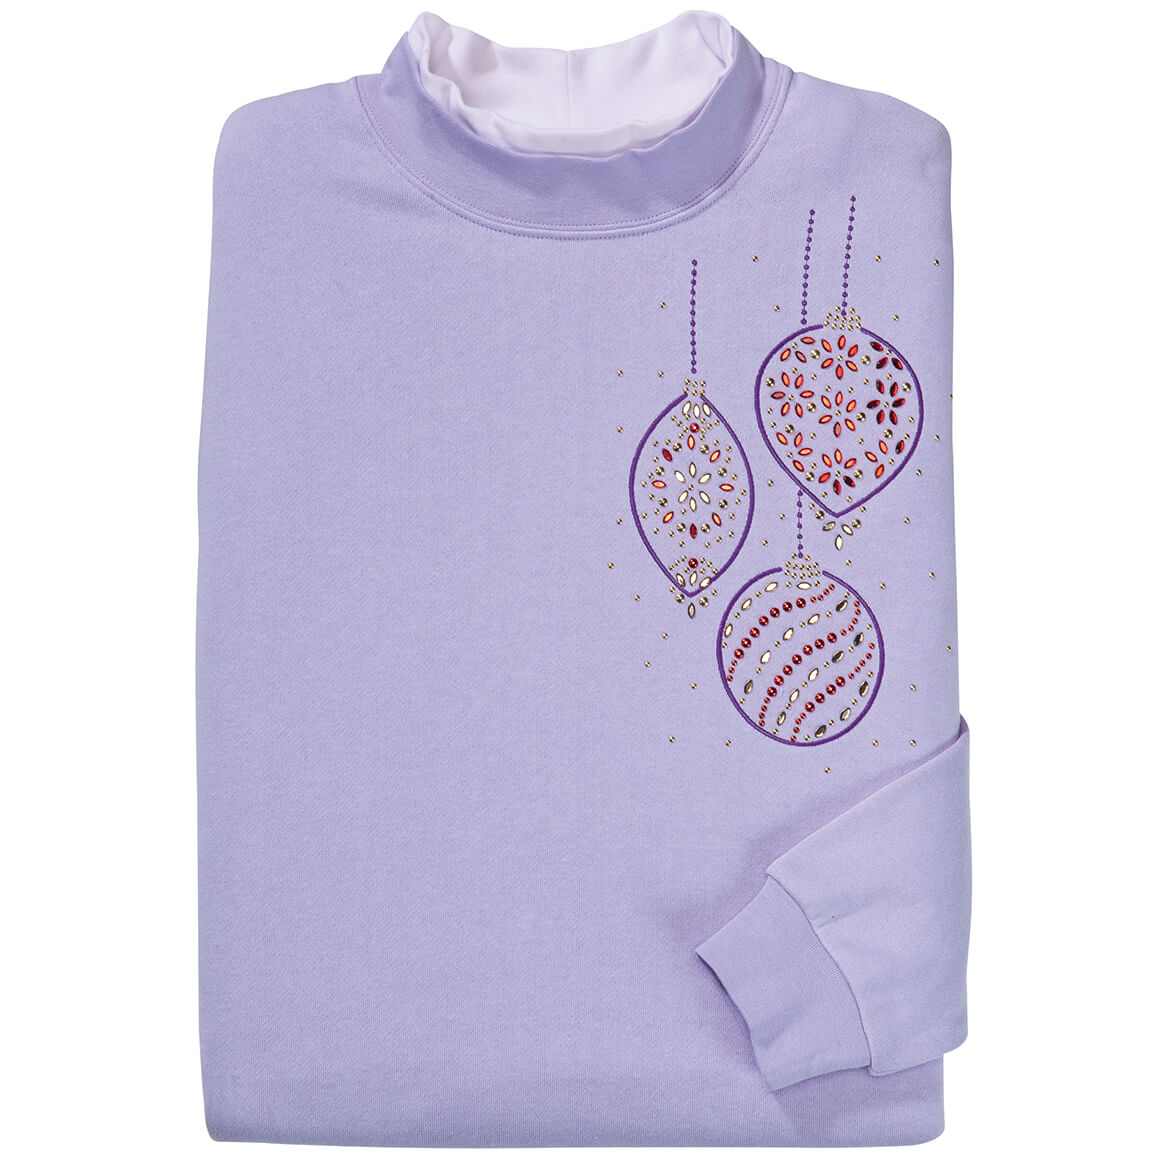 Rhinestone Hanging Ornaments Sweatshirt